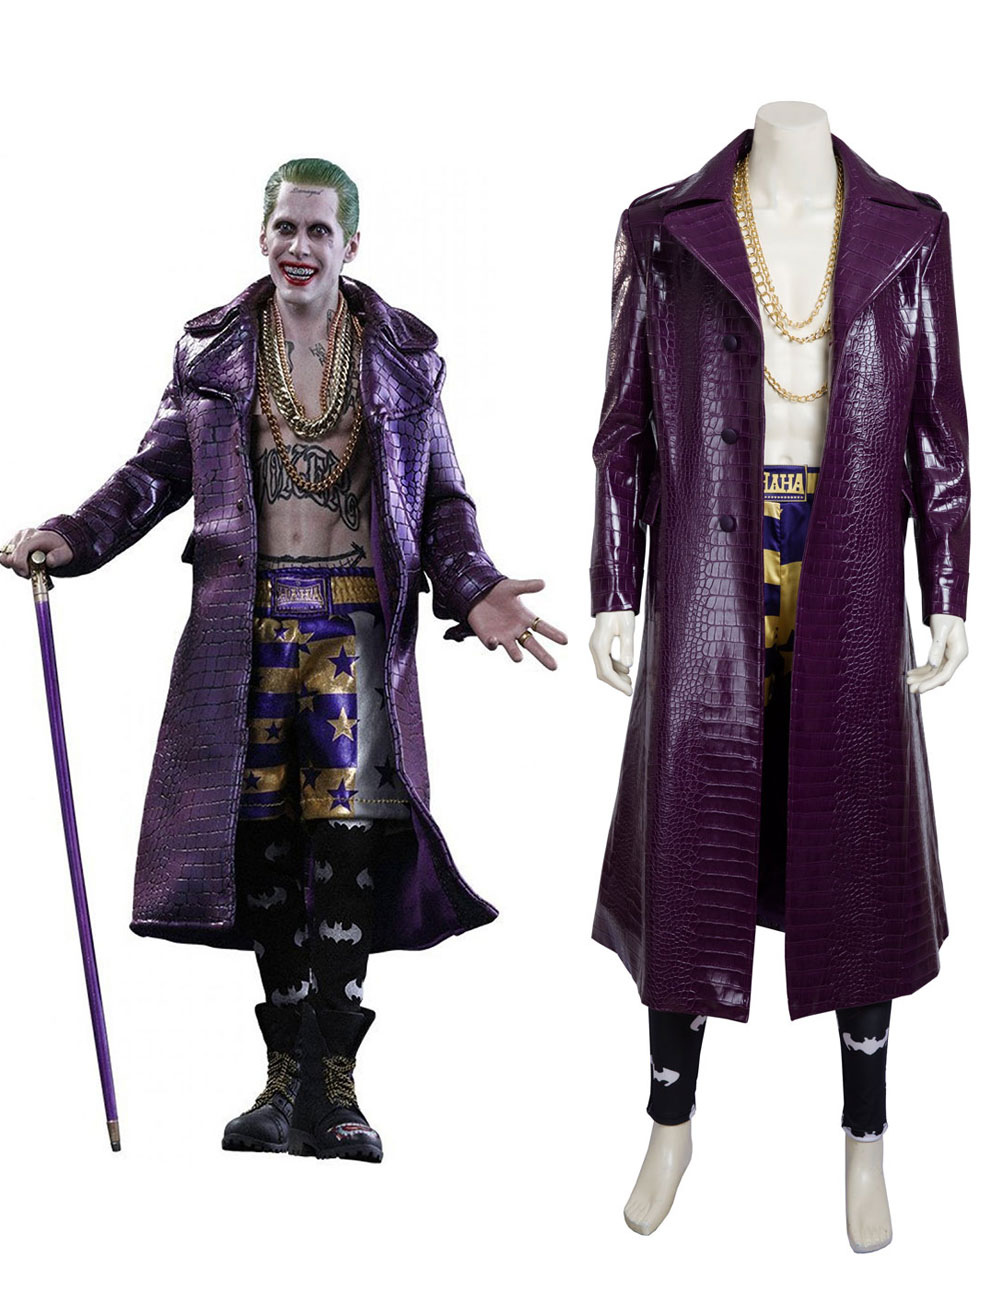 Suicide Squad Joker Halloween Costume.Suicide Squad Joker 2017 Film Halloween Cosplay Costume Deluxe Edition In 4 Pieces